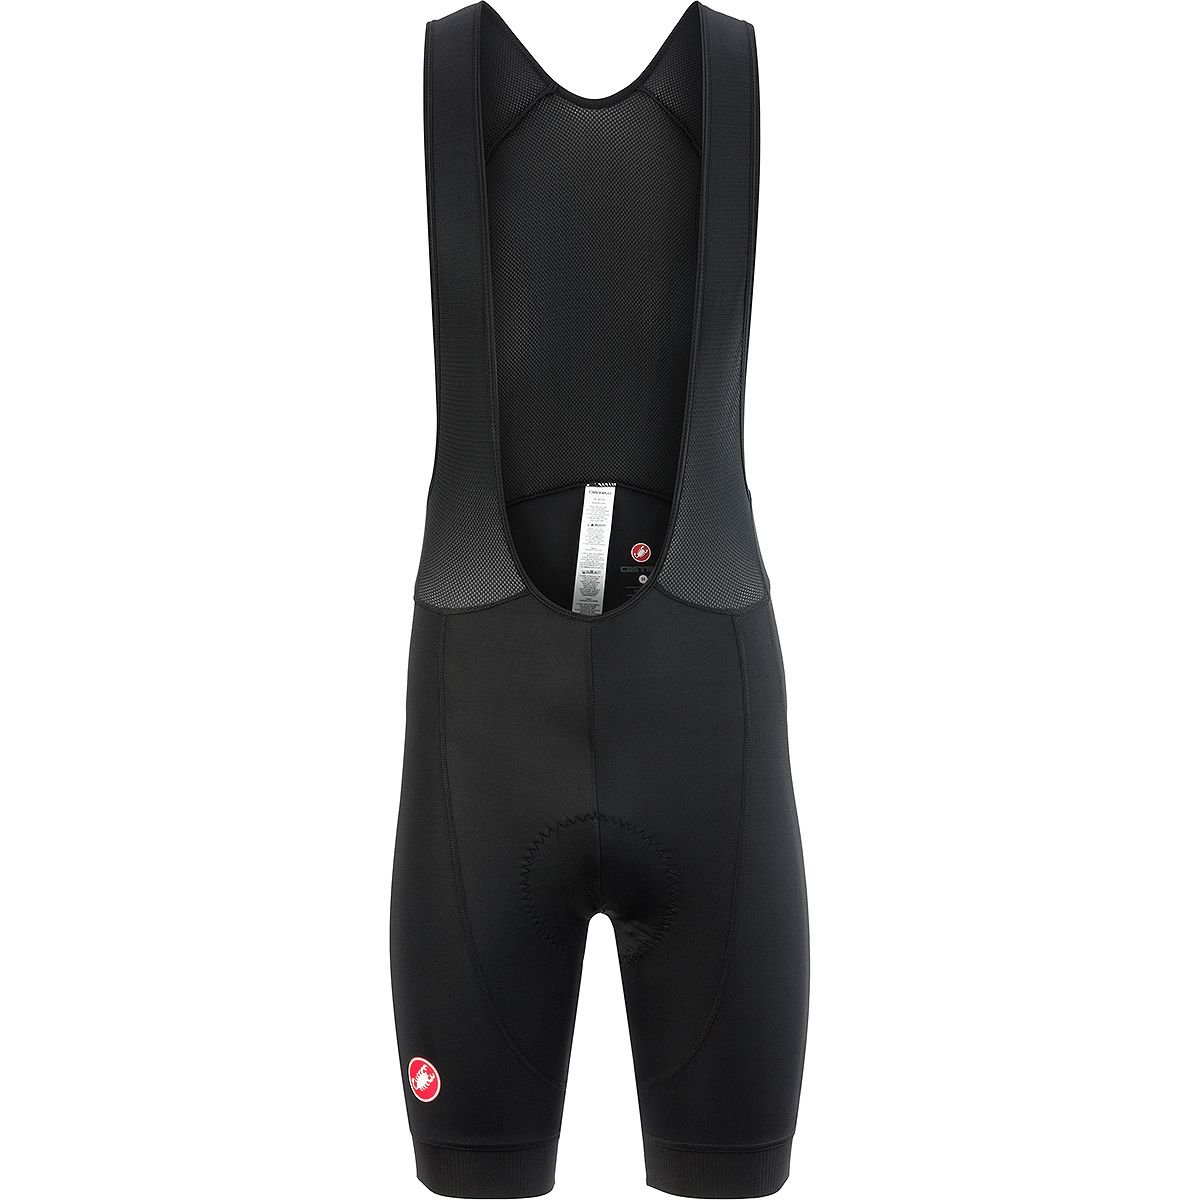 Castelli Cento Bib Short - Men's Black, S